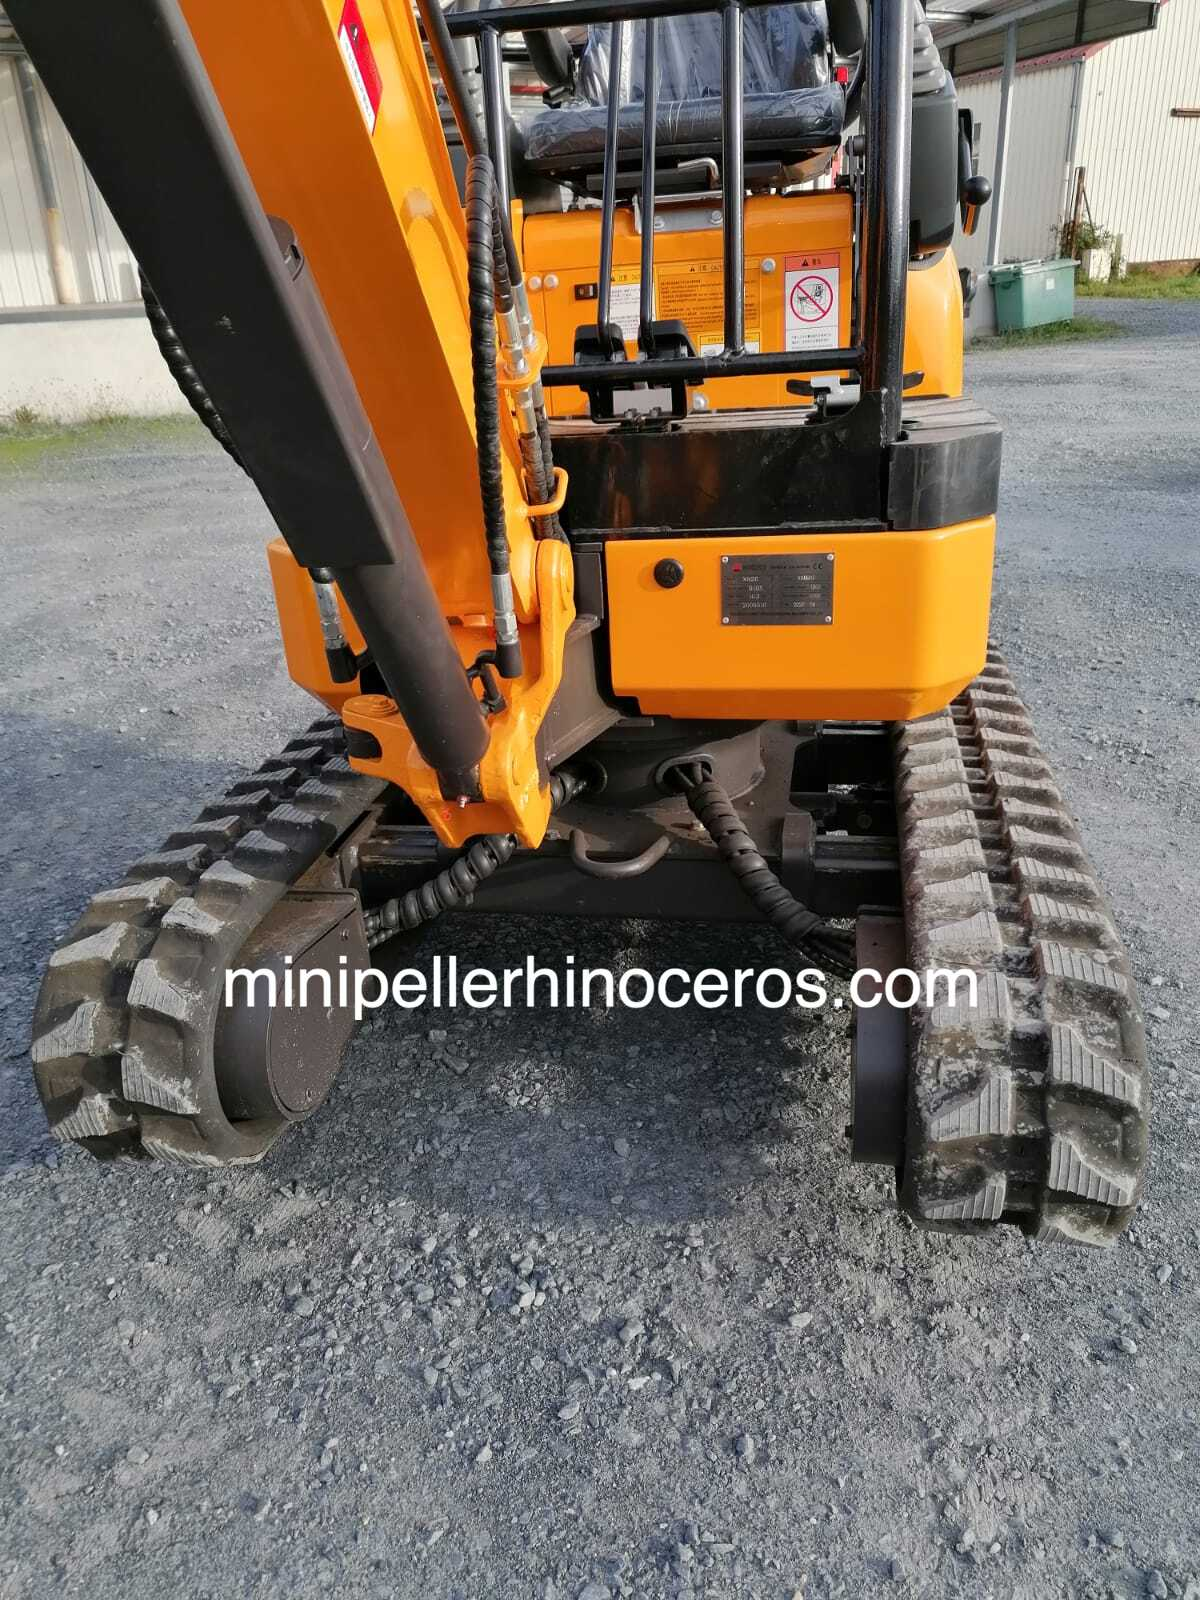 Pista variable del MINI-Excavadora RHINOCEROS XN20